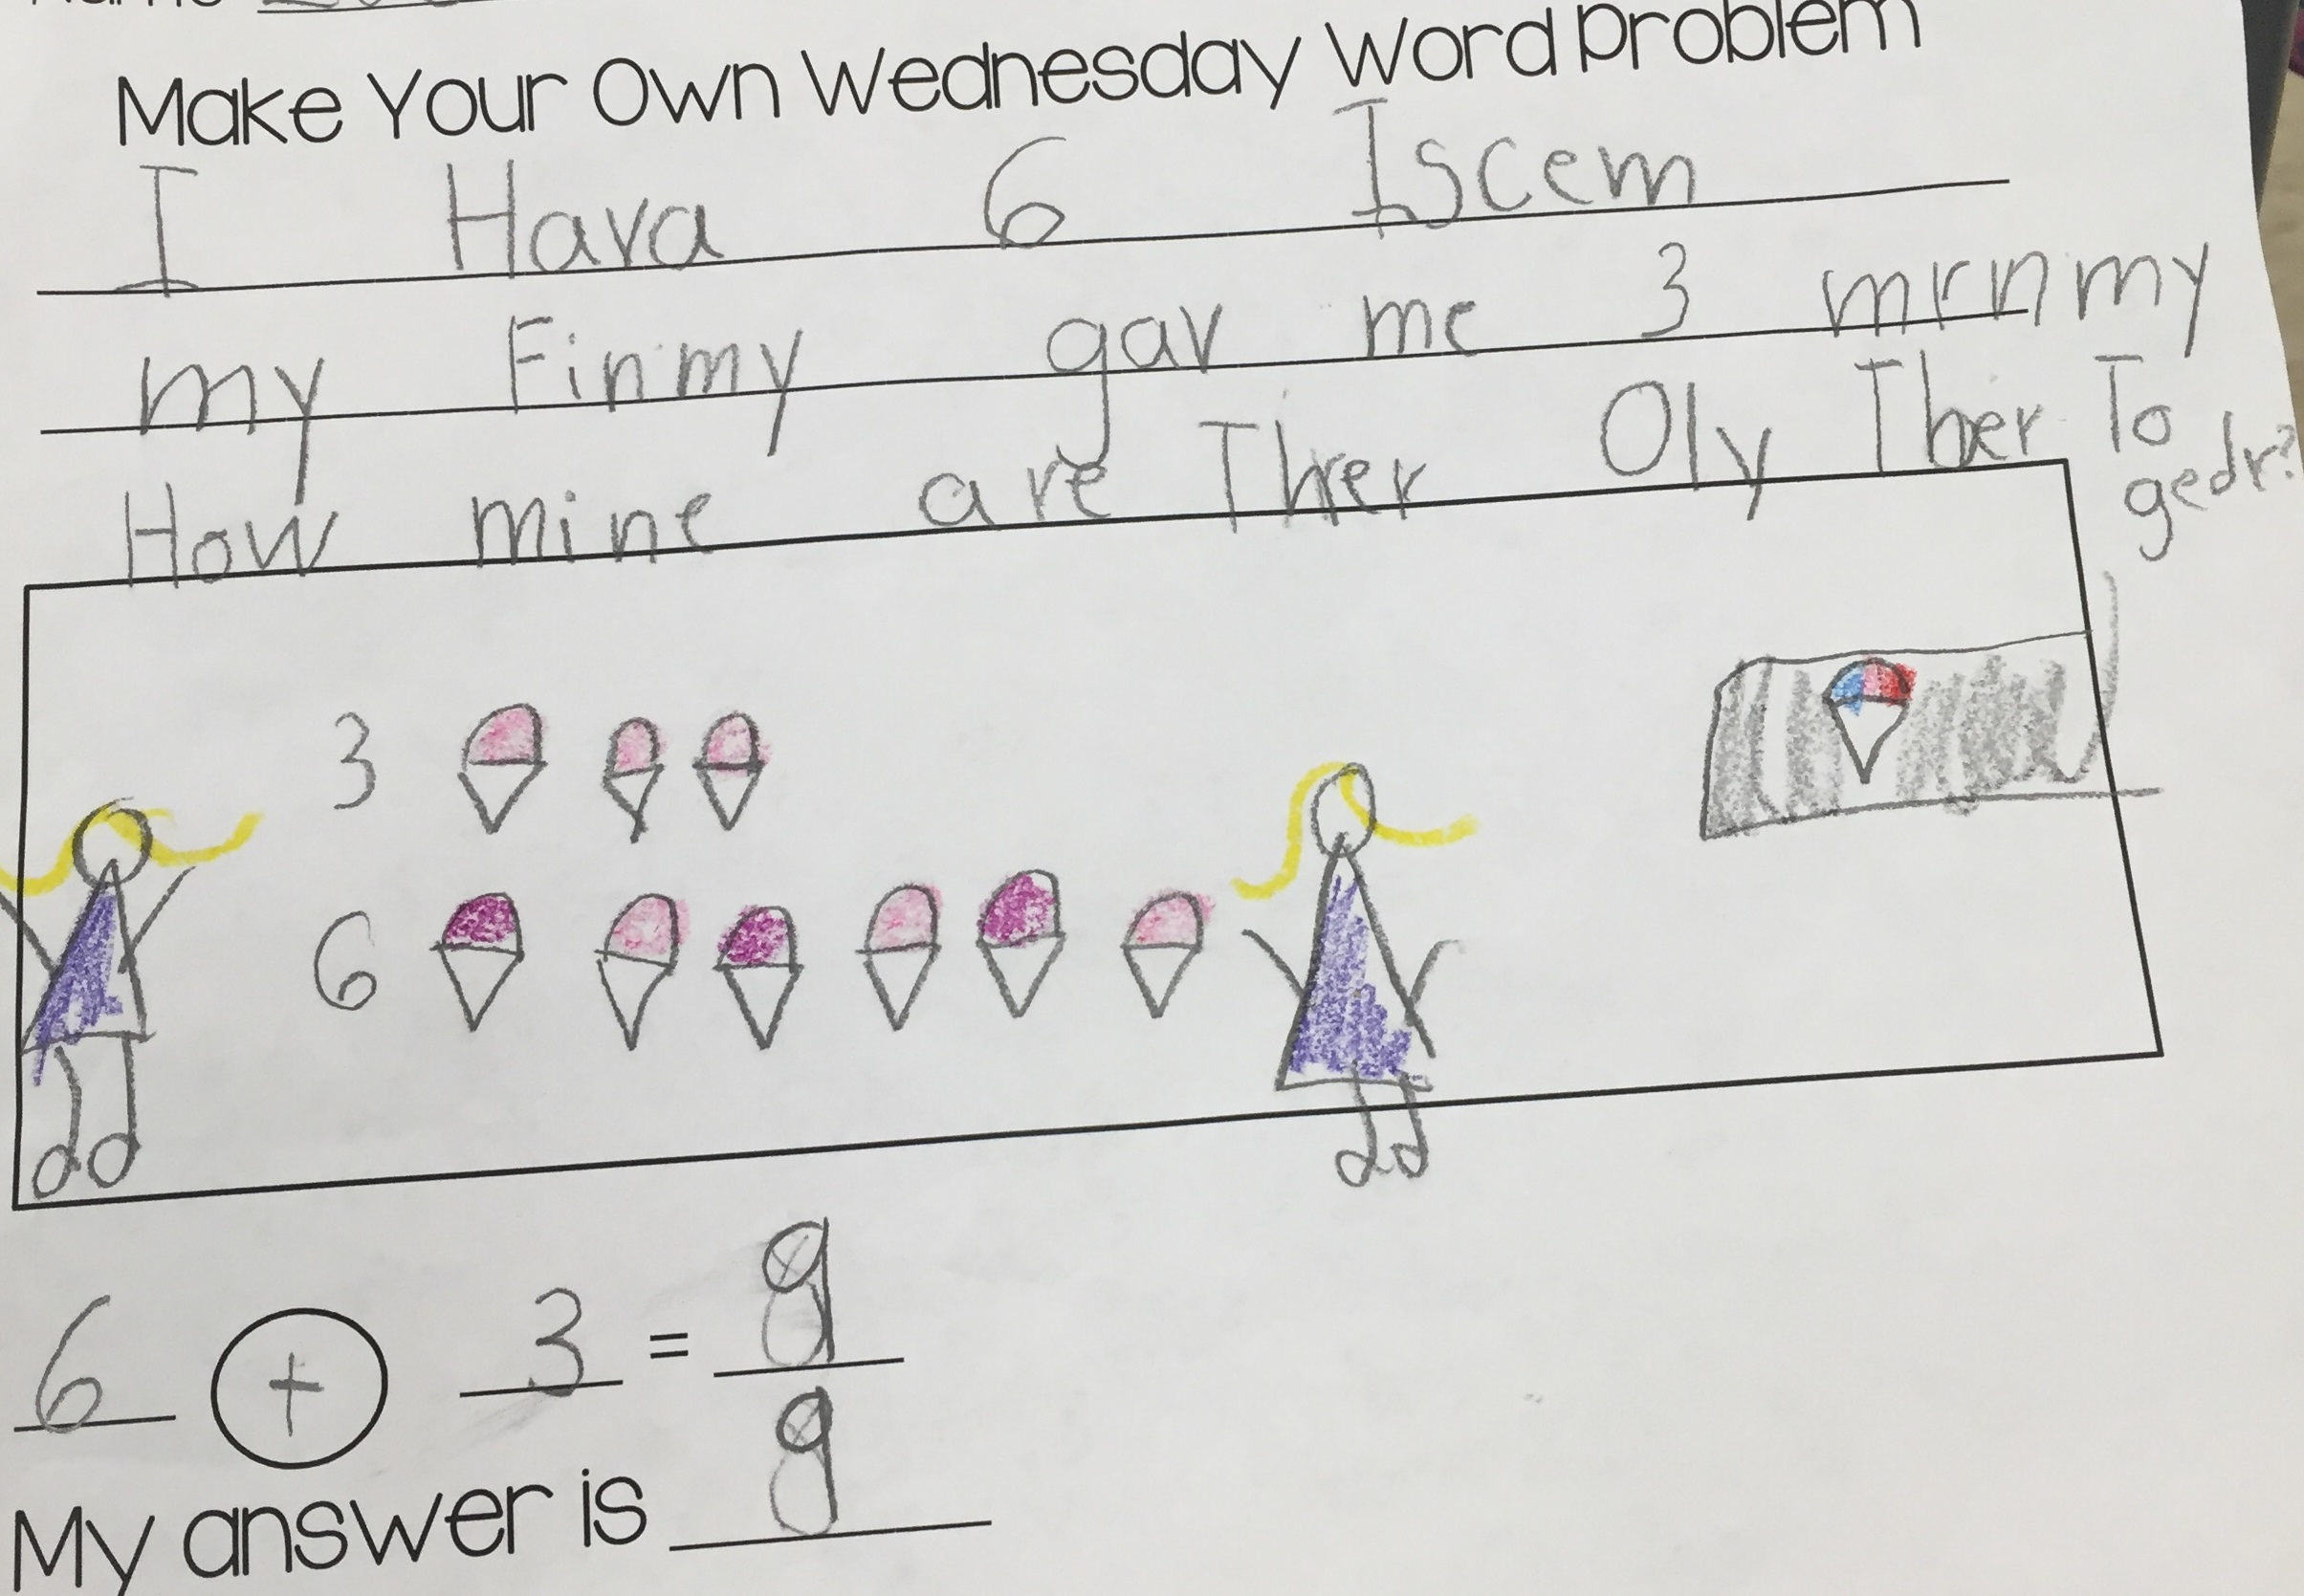 Create Your Own Wednesday Word Problem